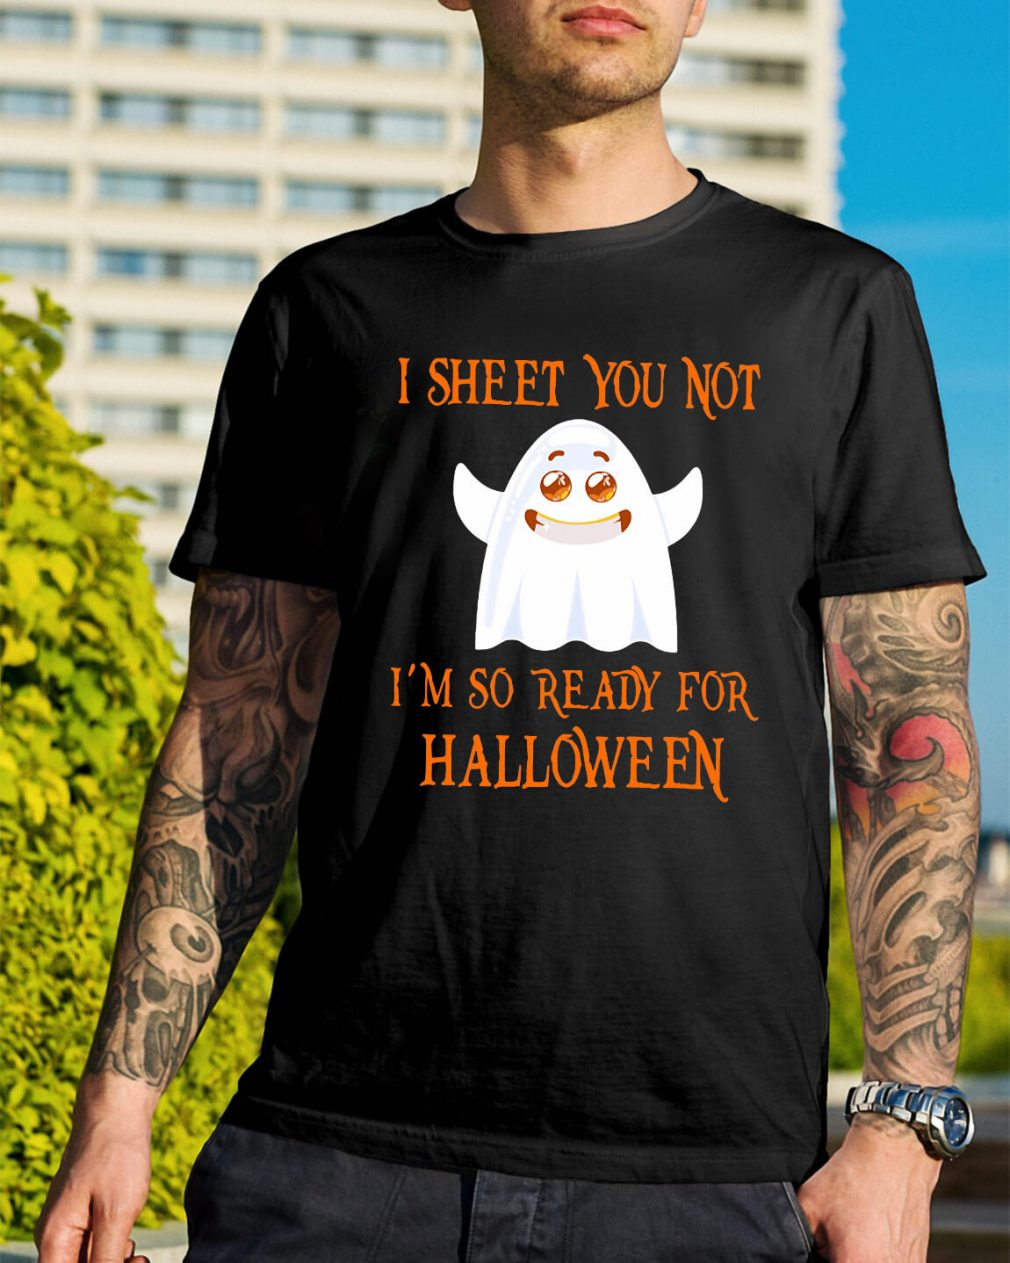 I sheet you not I'm so ready for Halloween funny shirt